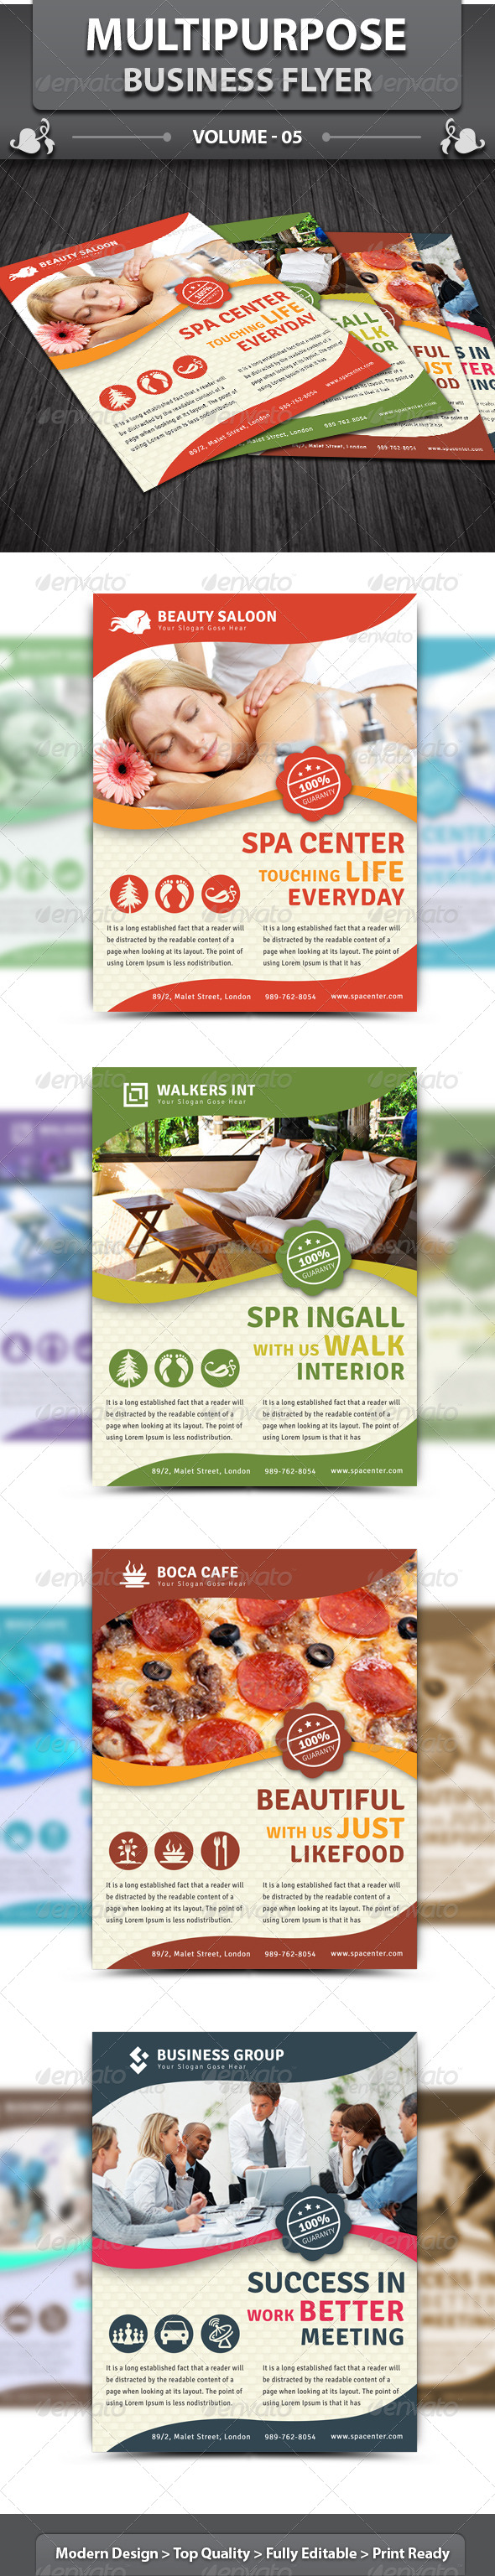 Multipurpose Business Flyer | Volume 5 - Corporate Flyers